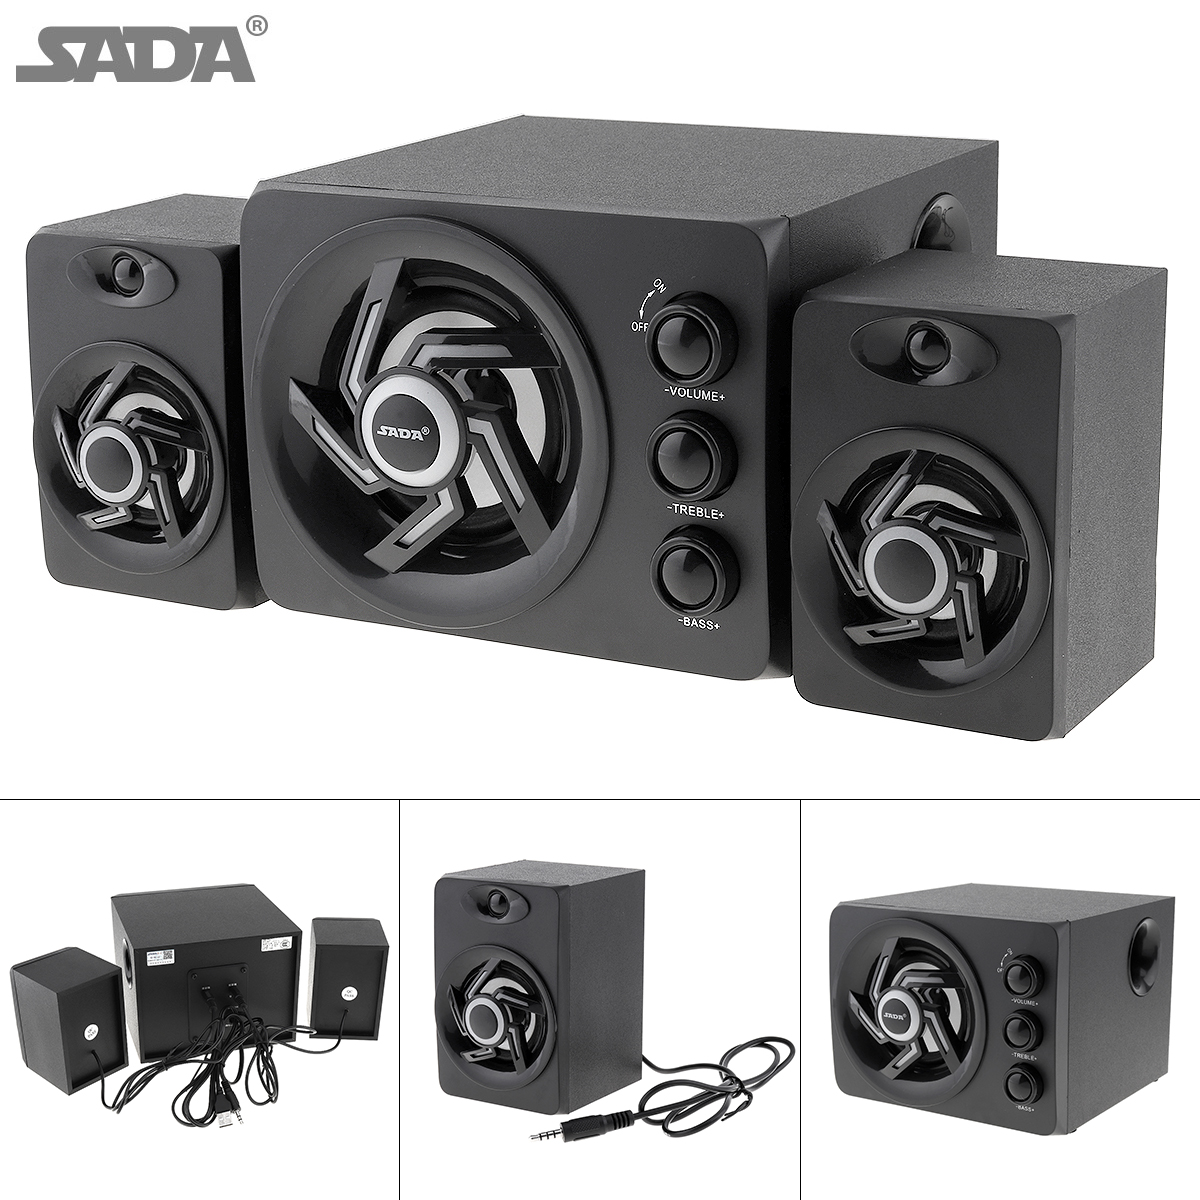 SADA 2018 Newest wooden 3D Stereo Subwoofer 100% Bass PC Speaker Portable Music DJ USB Computer Speakers For laptop Phone TV цена